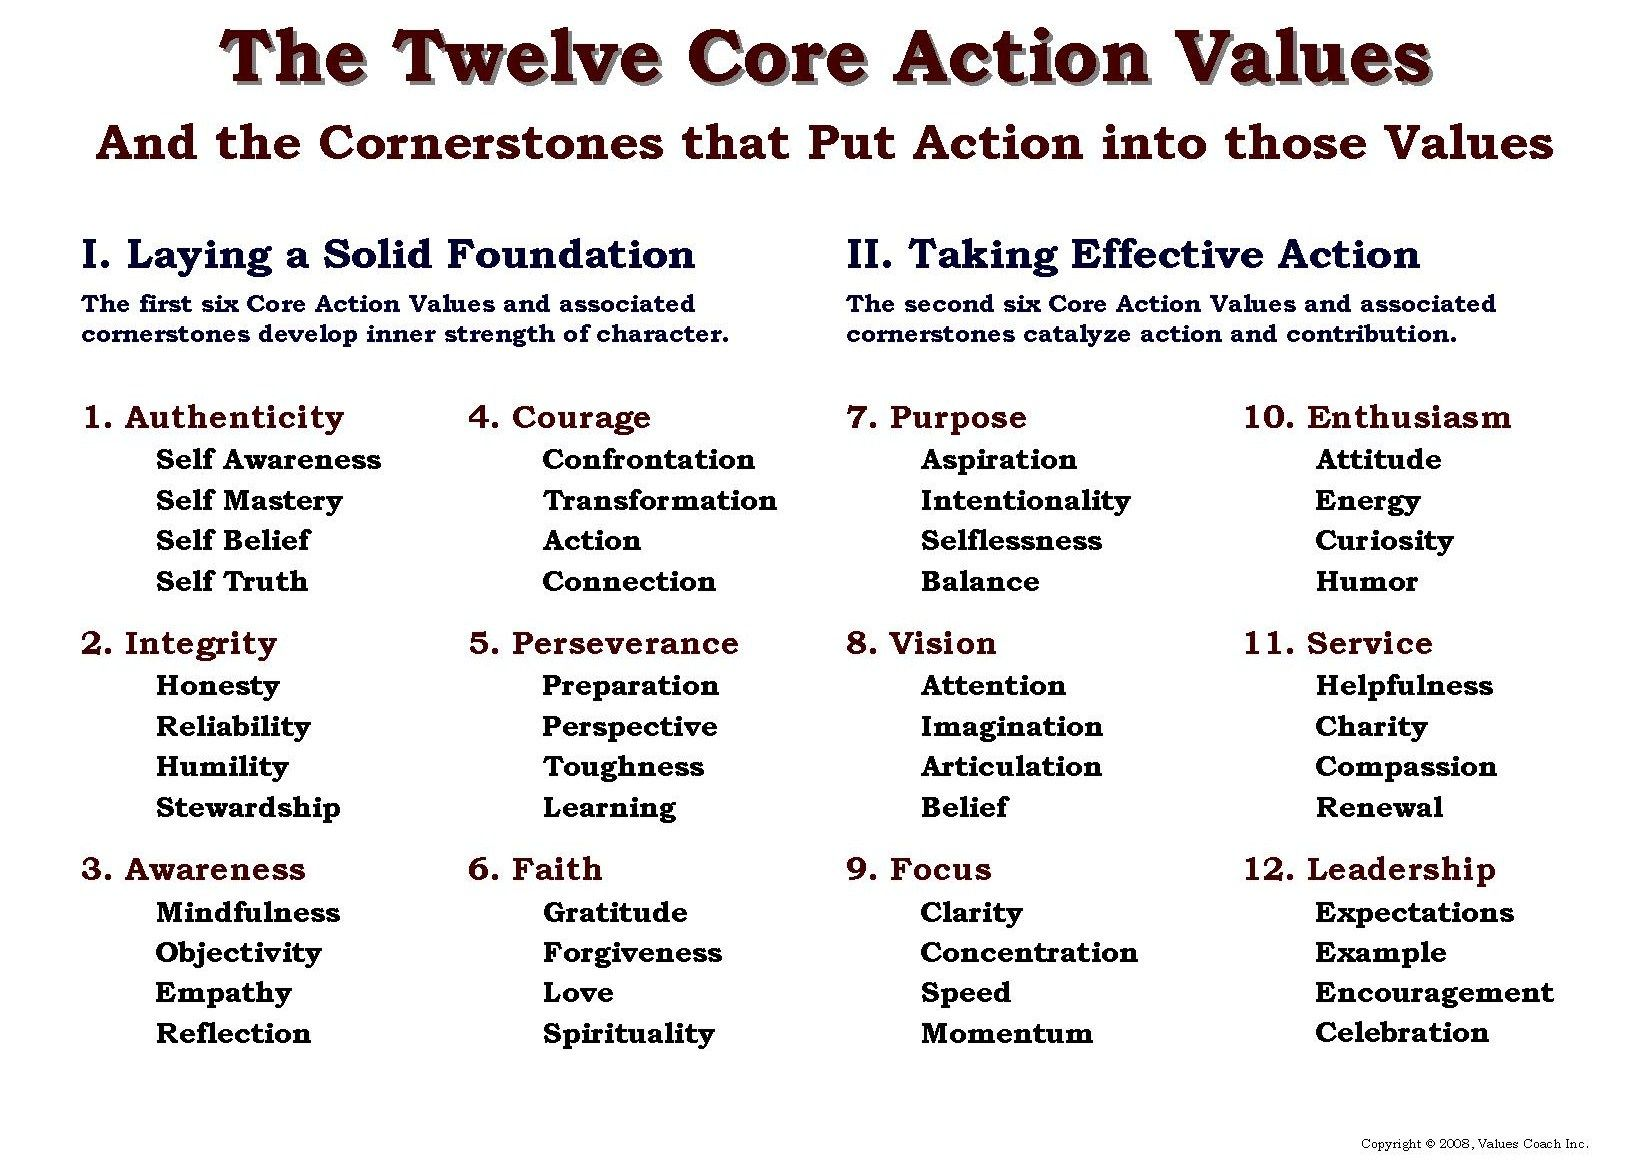 Worksheets Core Values Worksheet outline of the values coach inc course on twelve core action weak boundaries do you know your values